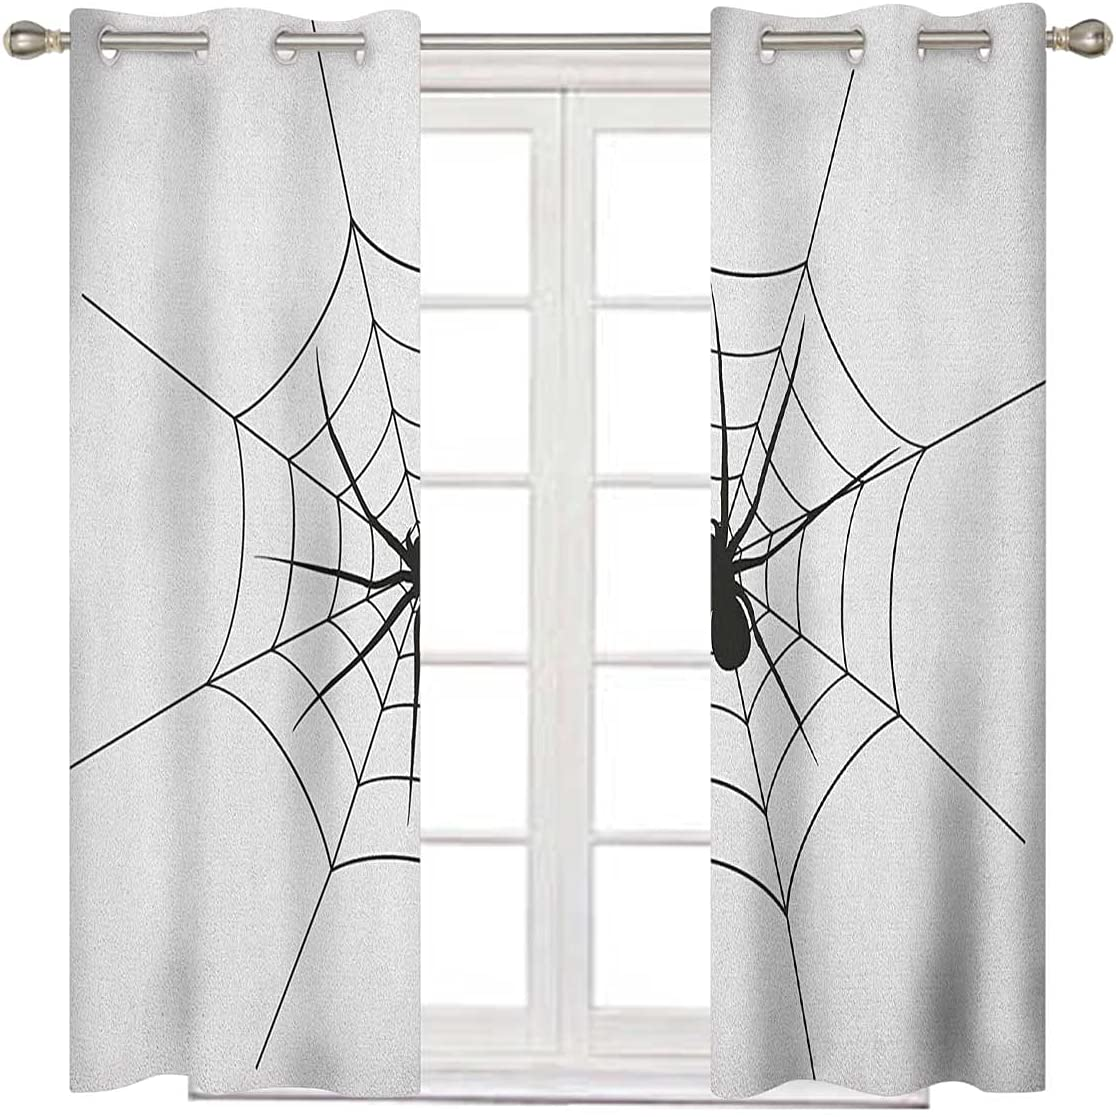 Sale SALE% OFF Spider Portland Mall Web Bedroom Blackout Curtains 63 Inches Black White Long